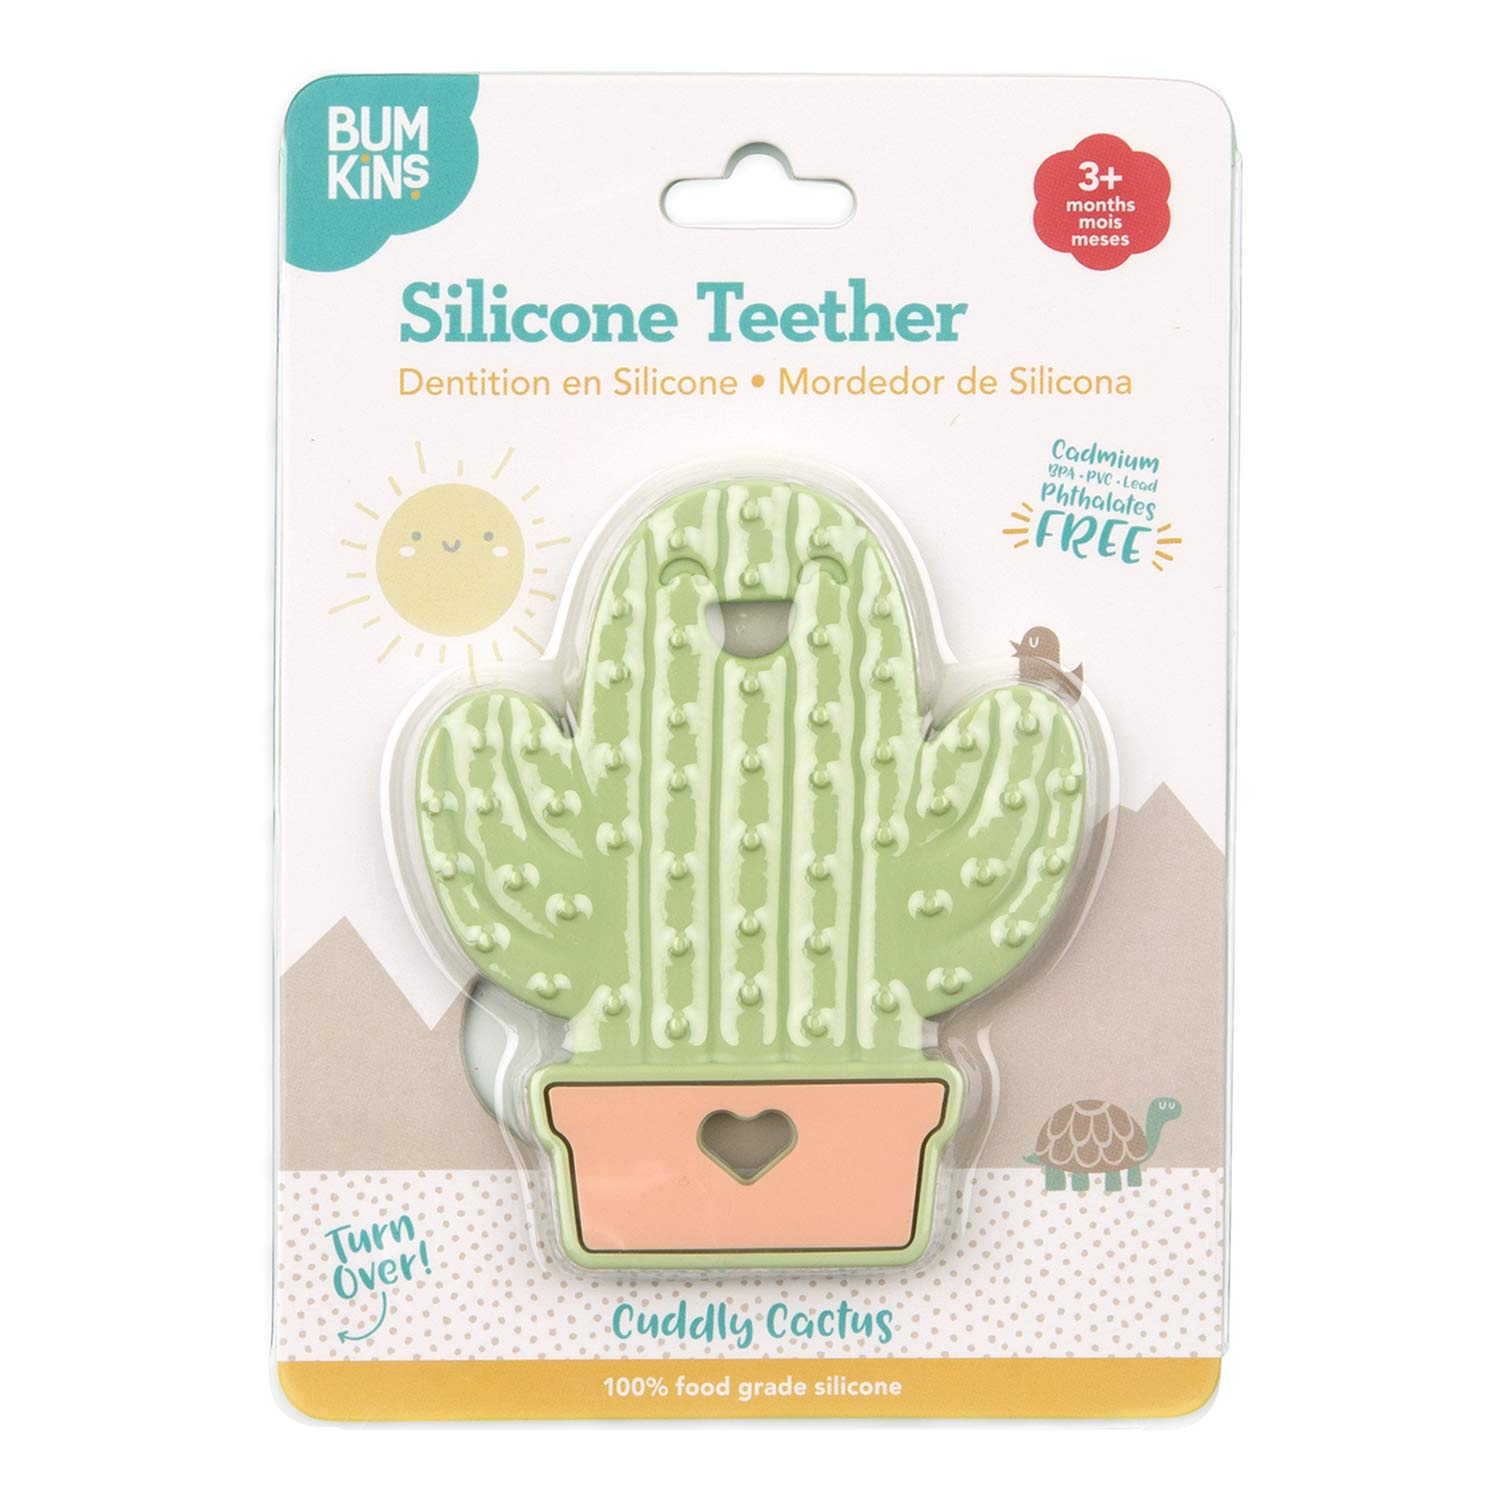 Textured Bumkins Silicone Teether Cactus Soft Bacteria Resistant Flexible